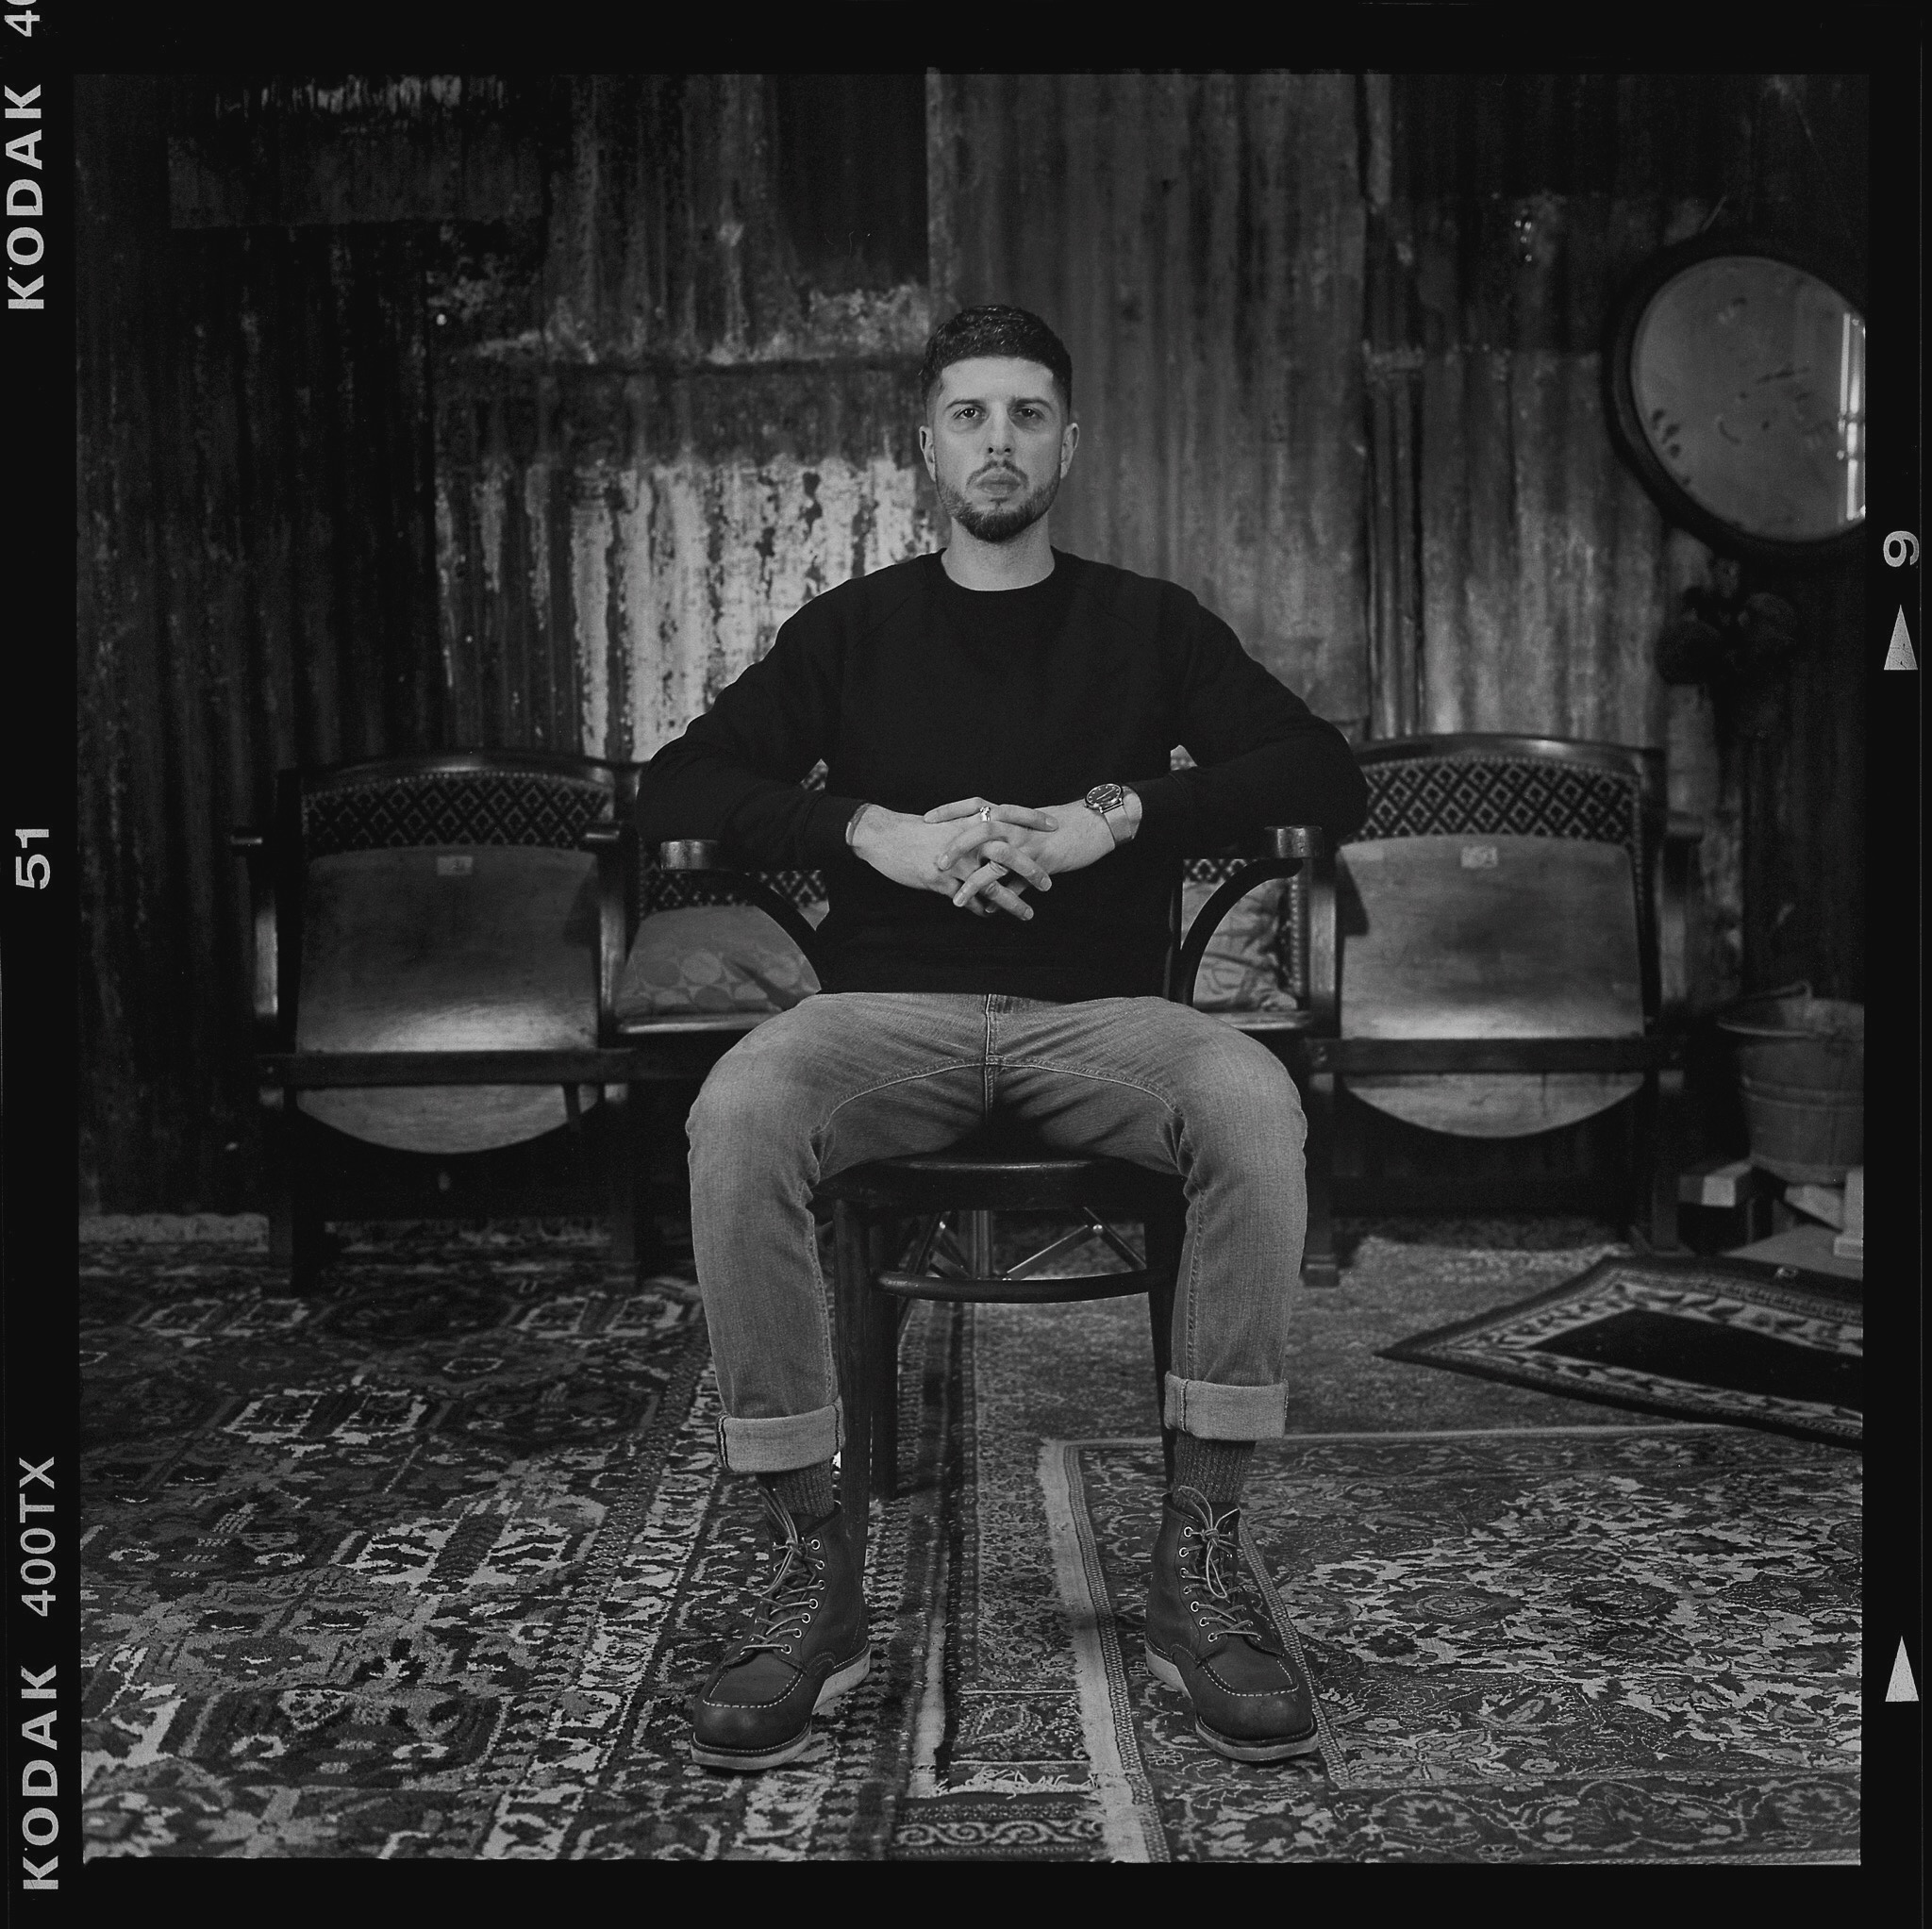 Black and white photo of Anthony Anaxagorou - he sits on a chair in the middle of a room with Persian rugs across the floor. The wall seems to be made of corrugated iron. He sits, legs akimbo and hands clasped, with his elbows on the armrests. He wears a black jumper, jeans and boots.